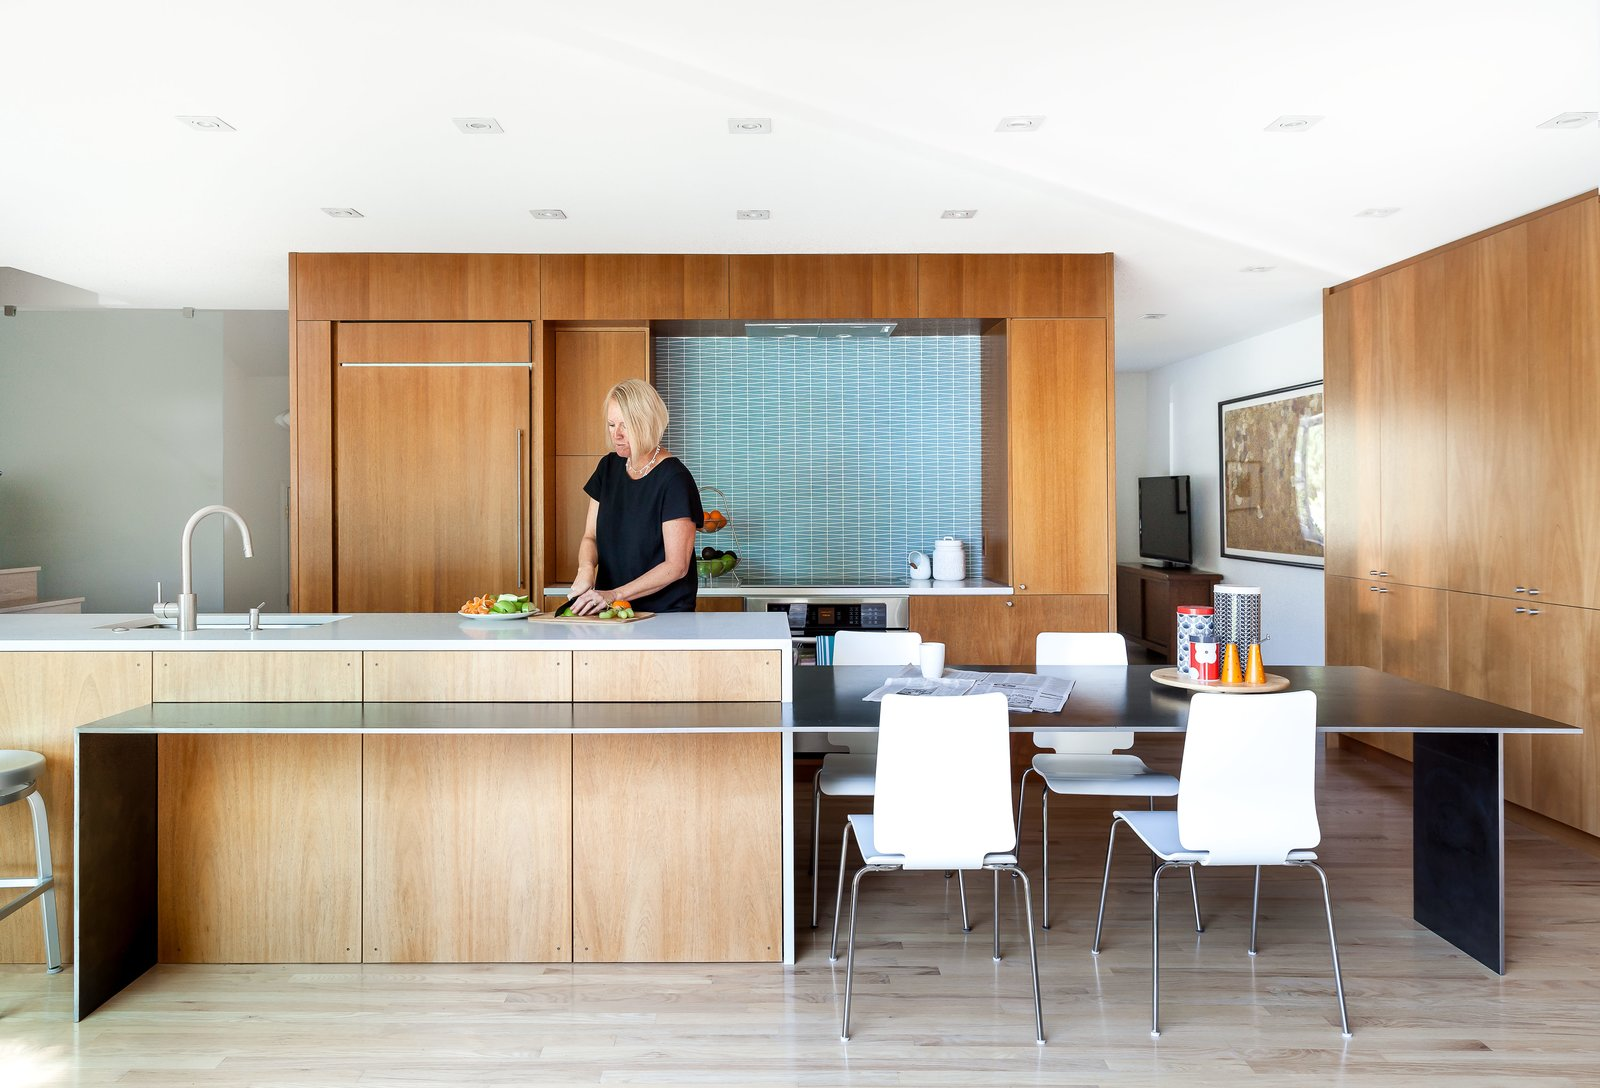 6 Flooring Options To Consider For Your Next Kitchen Renovation